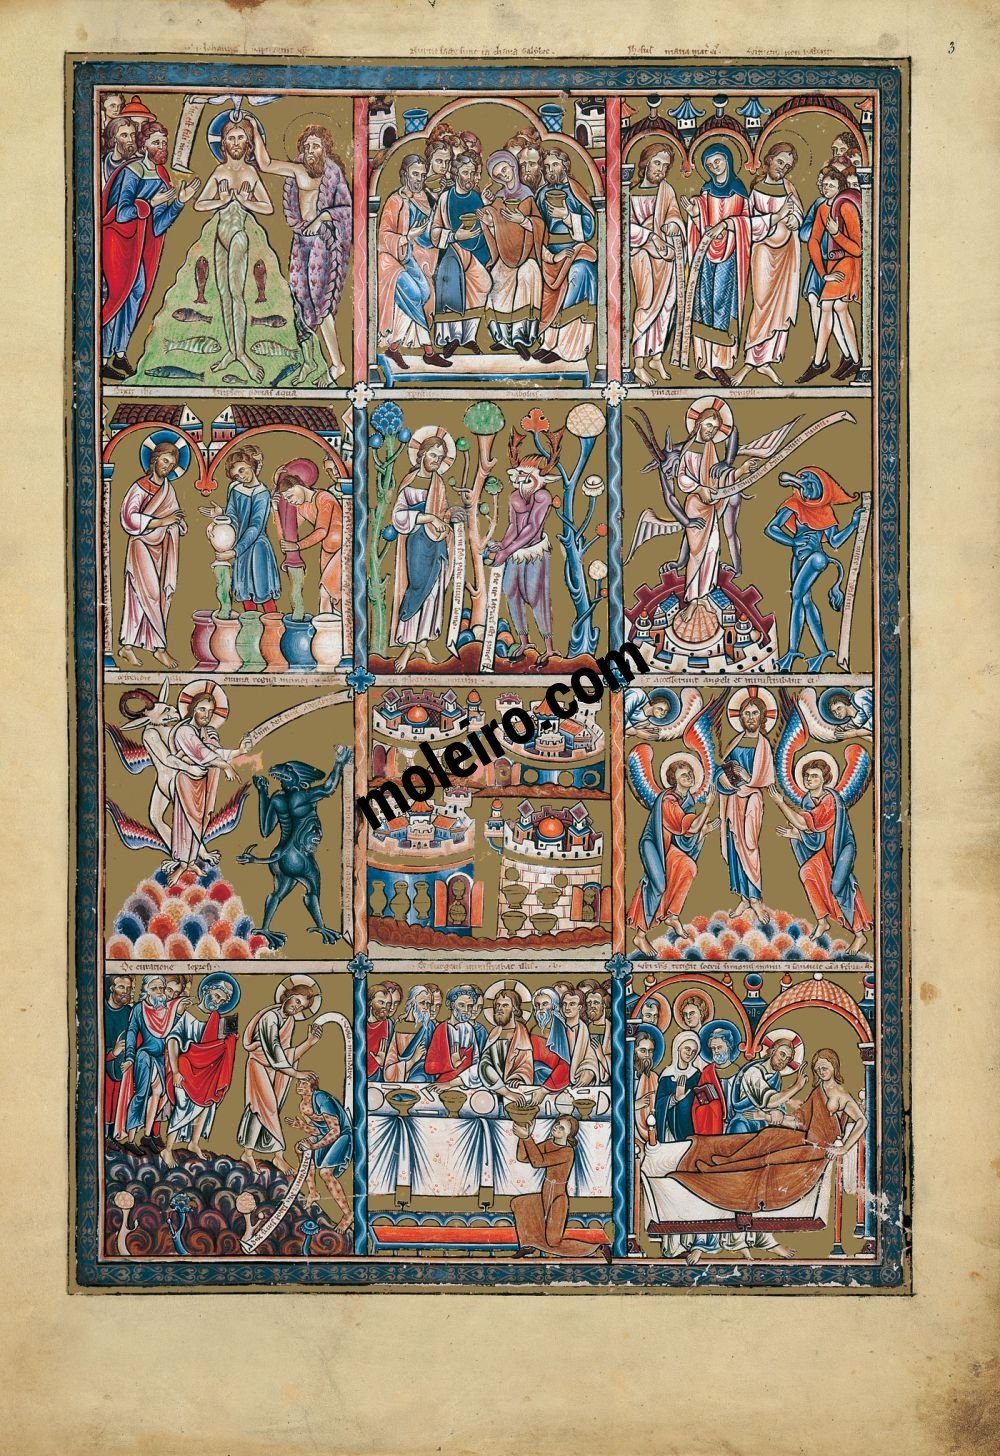 The Great Canterbury Psalter f. 3r,  Scenes from the life of Christ